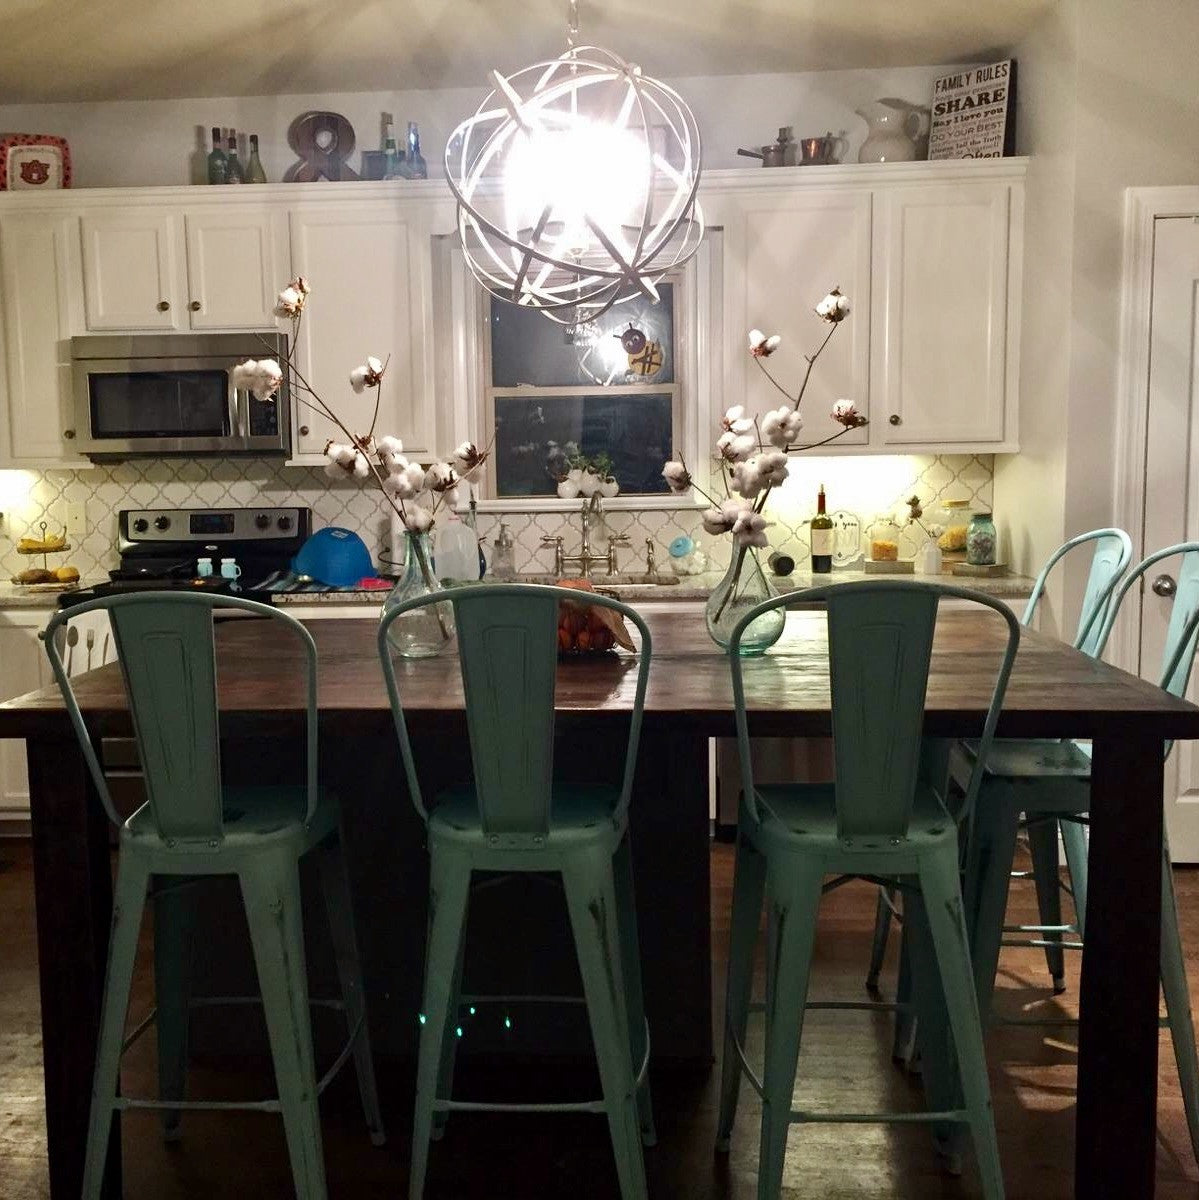 Coffee colored kitchen island and bar with turquoise barstools